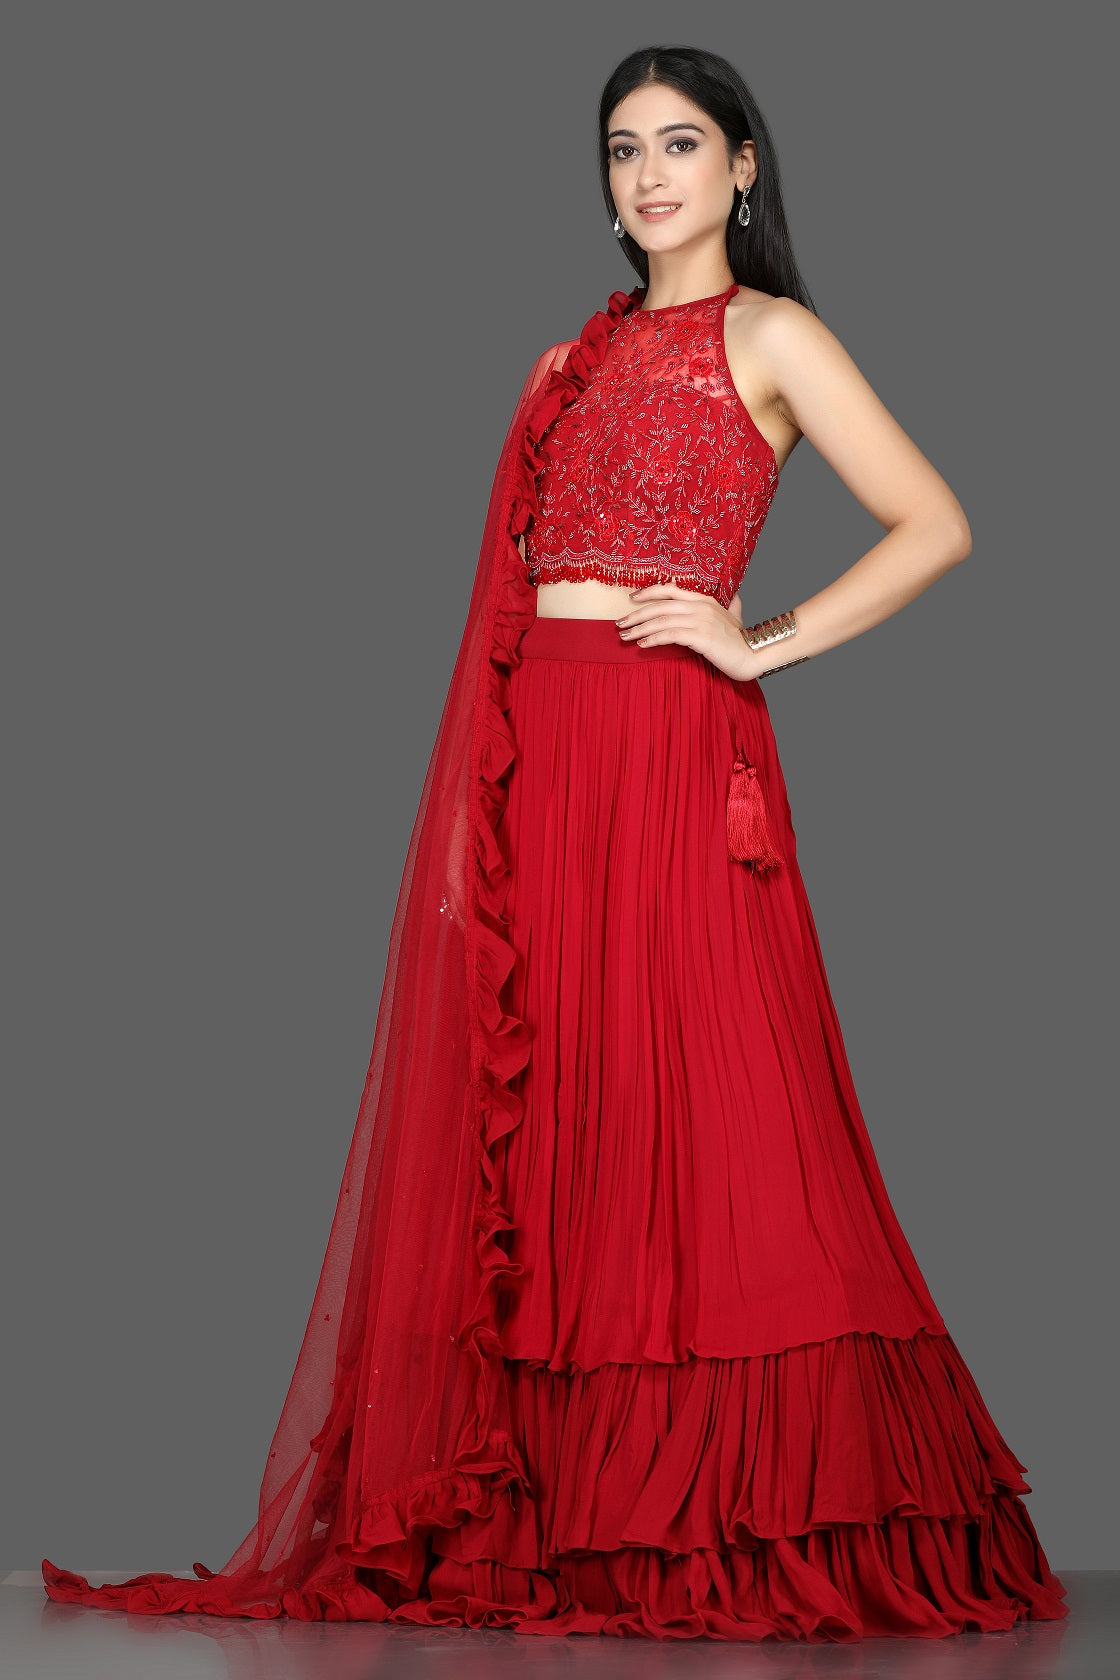 Buy gorgeous red embroidered layered georgette lehenga online in USA with ruffle dupatta. Flaunt ethnic fashion with exquisite designer lehenga, Indian wedding dresses from Pure Elegance Indian fashion boutique in USA.-side